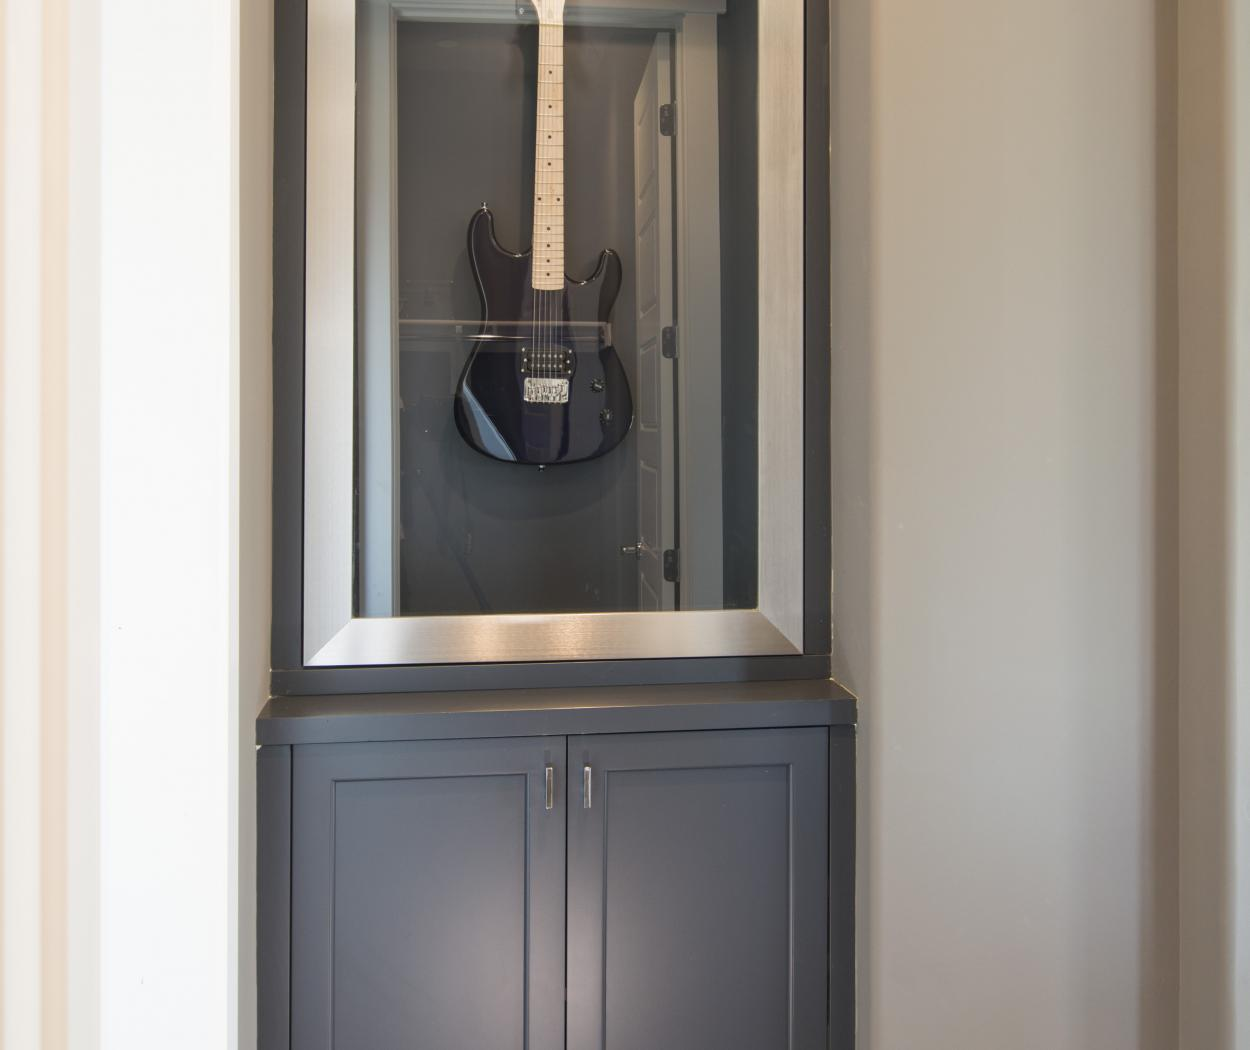 Gorgeous Hallway Built-In Painted in a Dark Grey - Blue with an Aluminum Door Frame and Glass Door